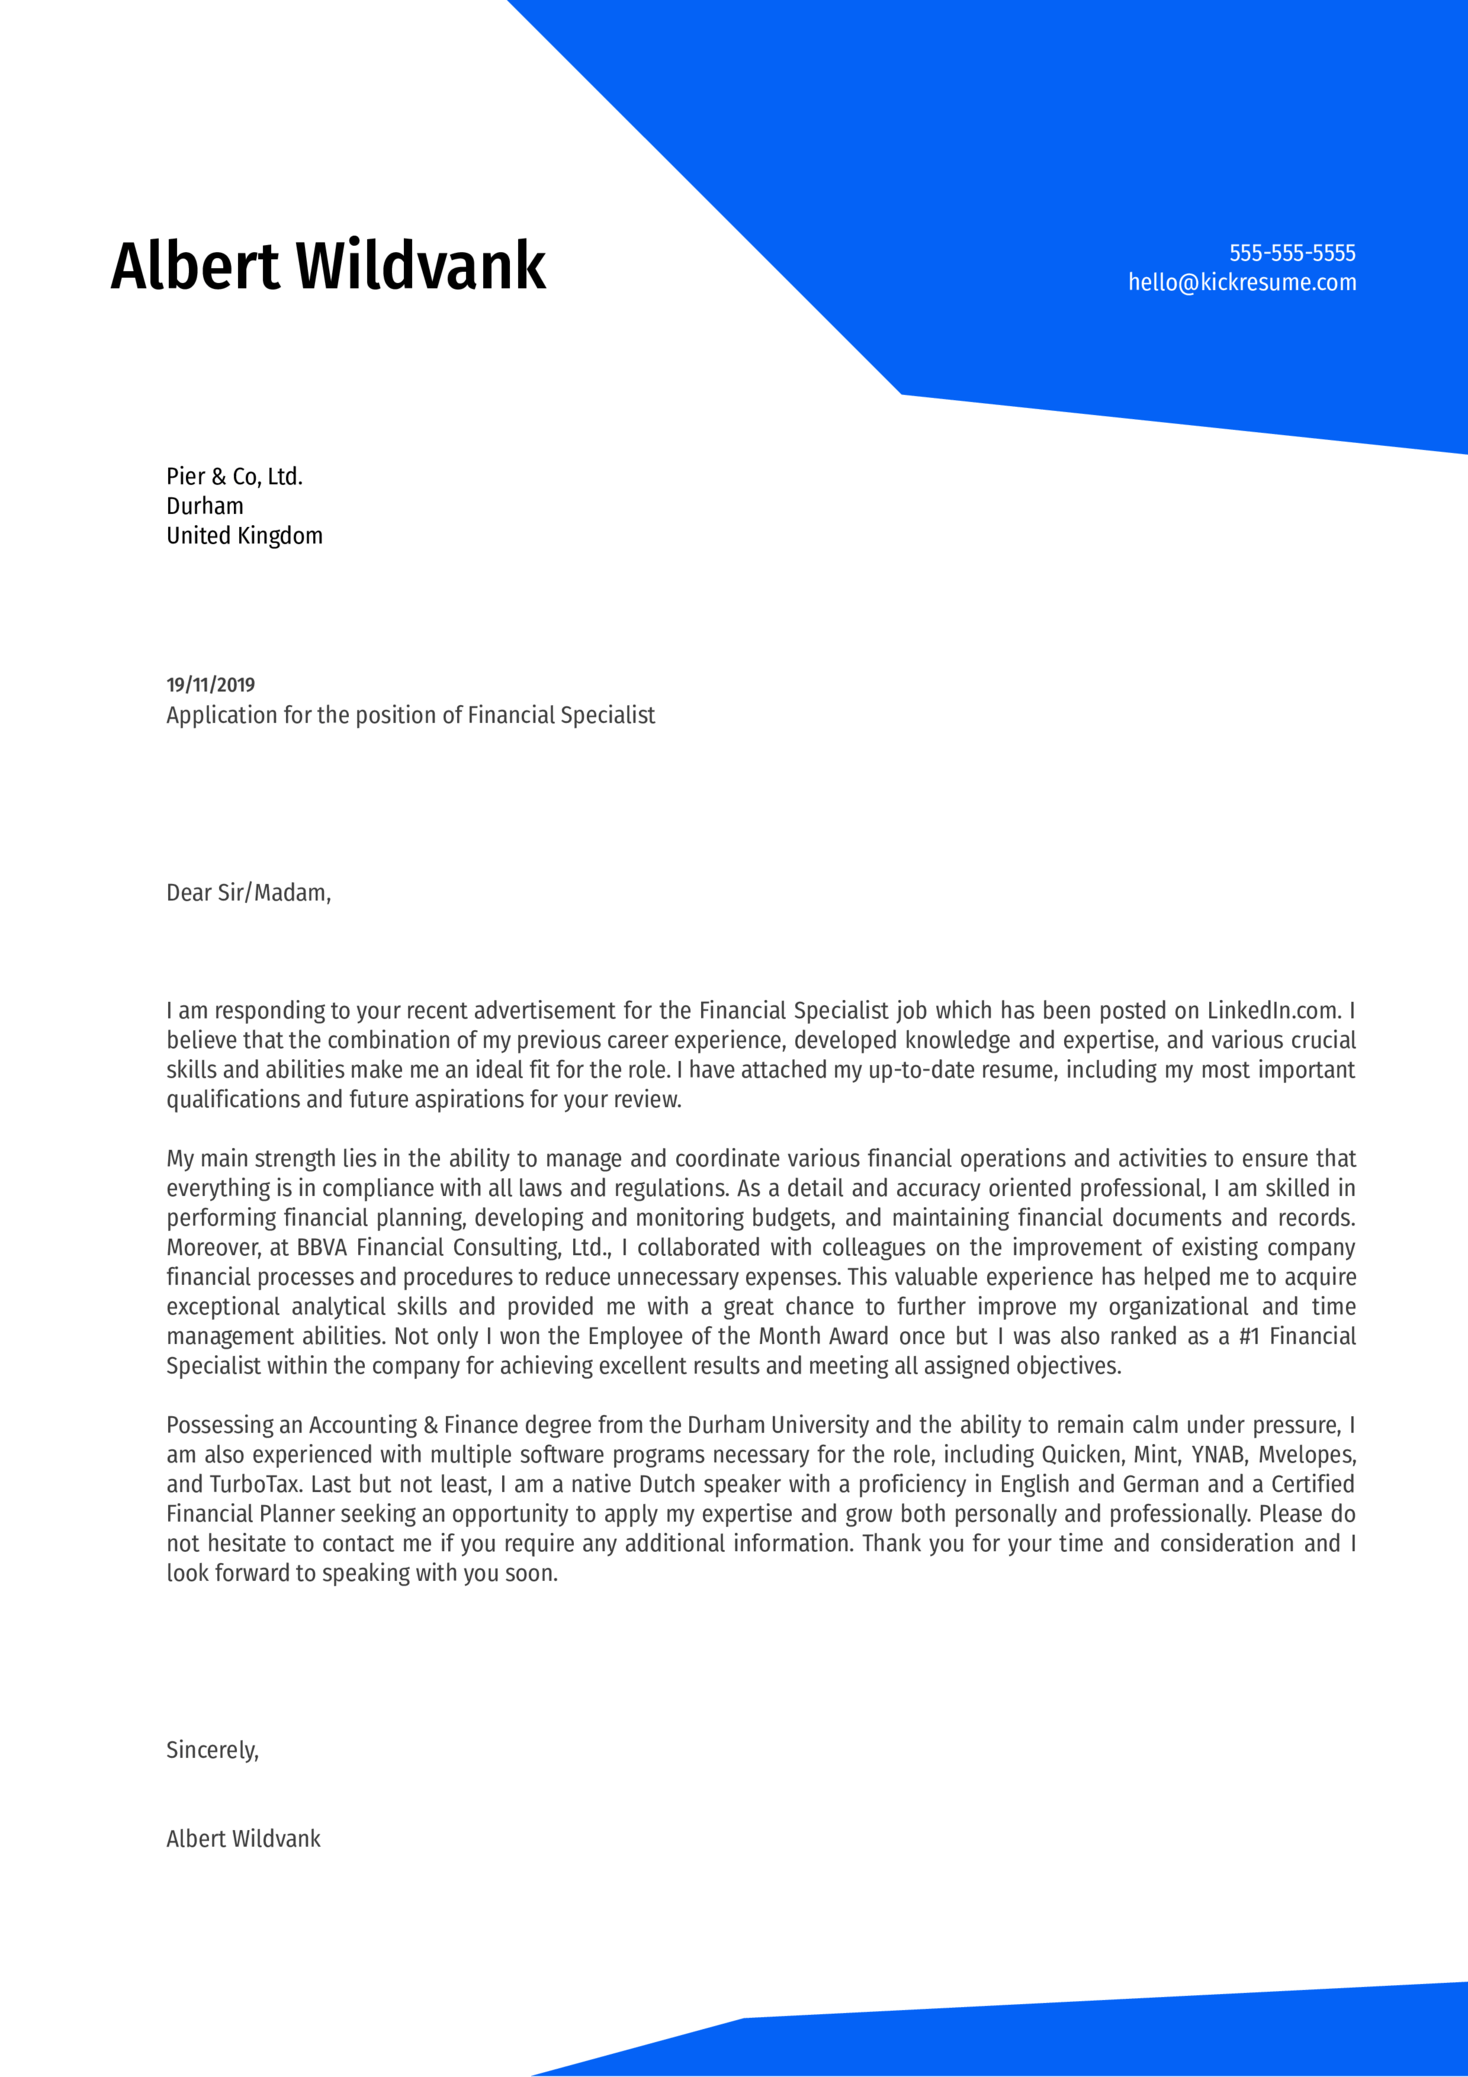 Financial Specialist Cover Letter Sample